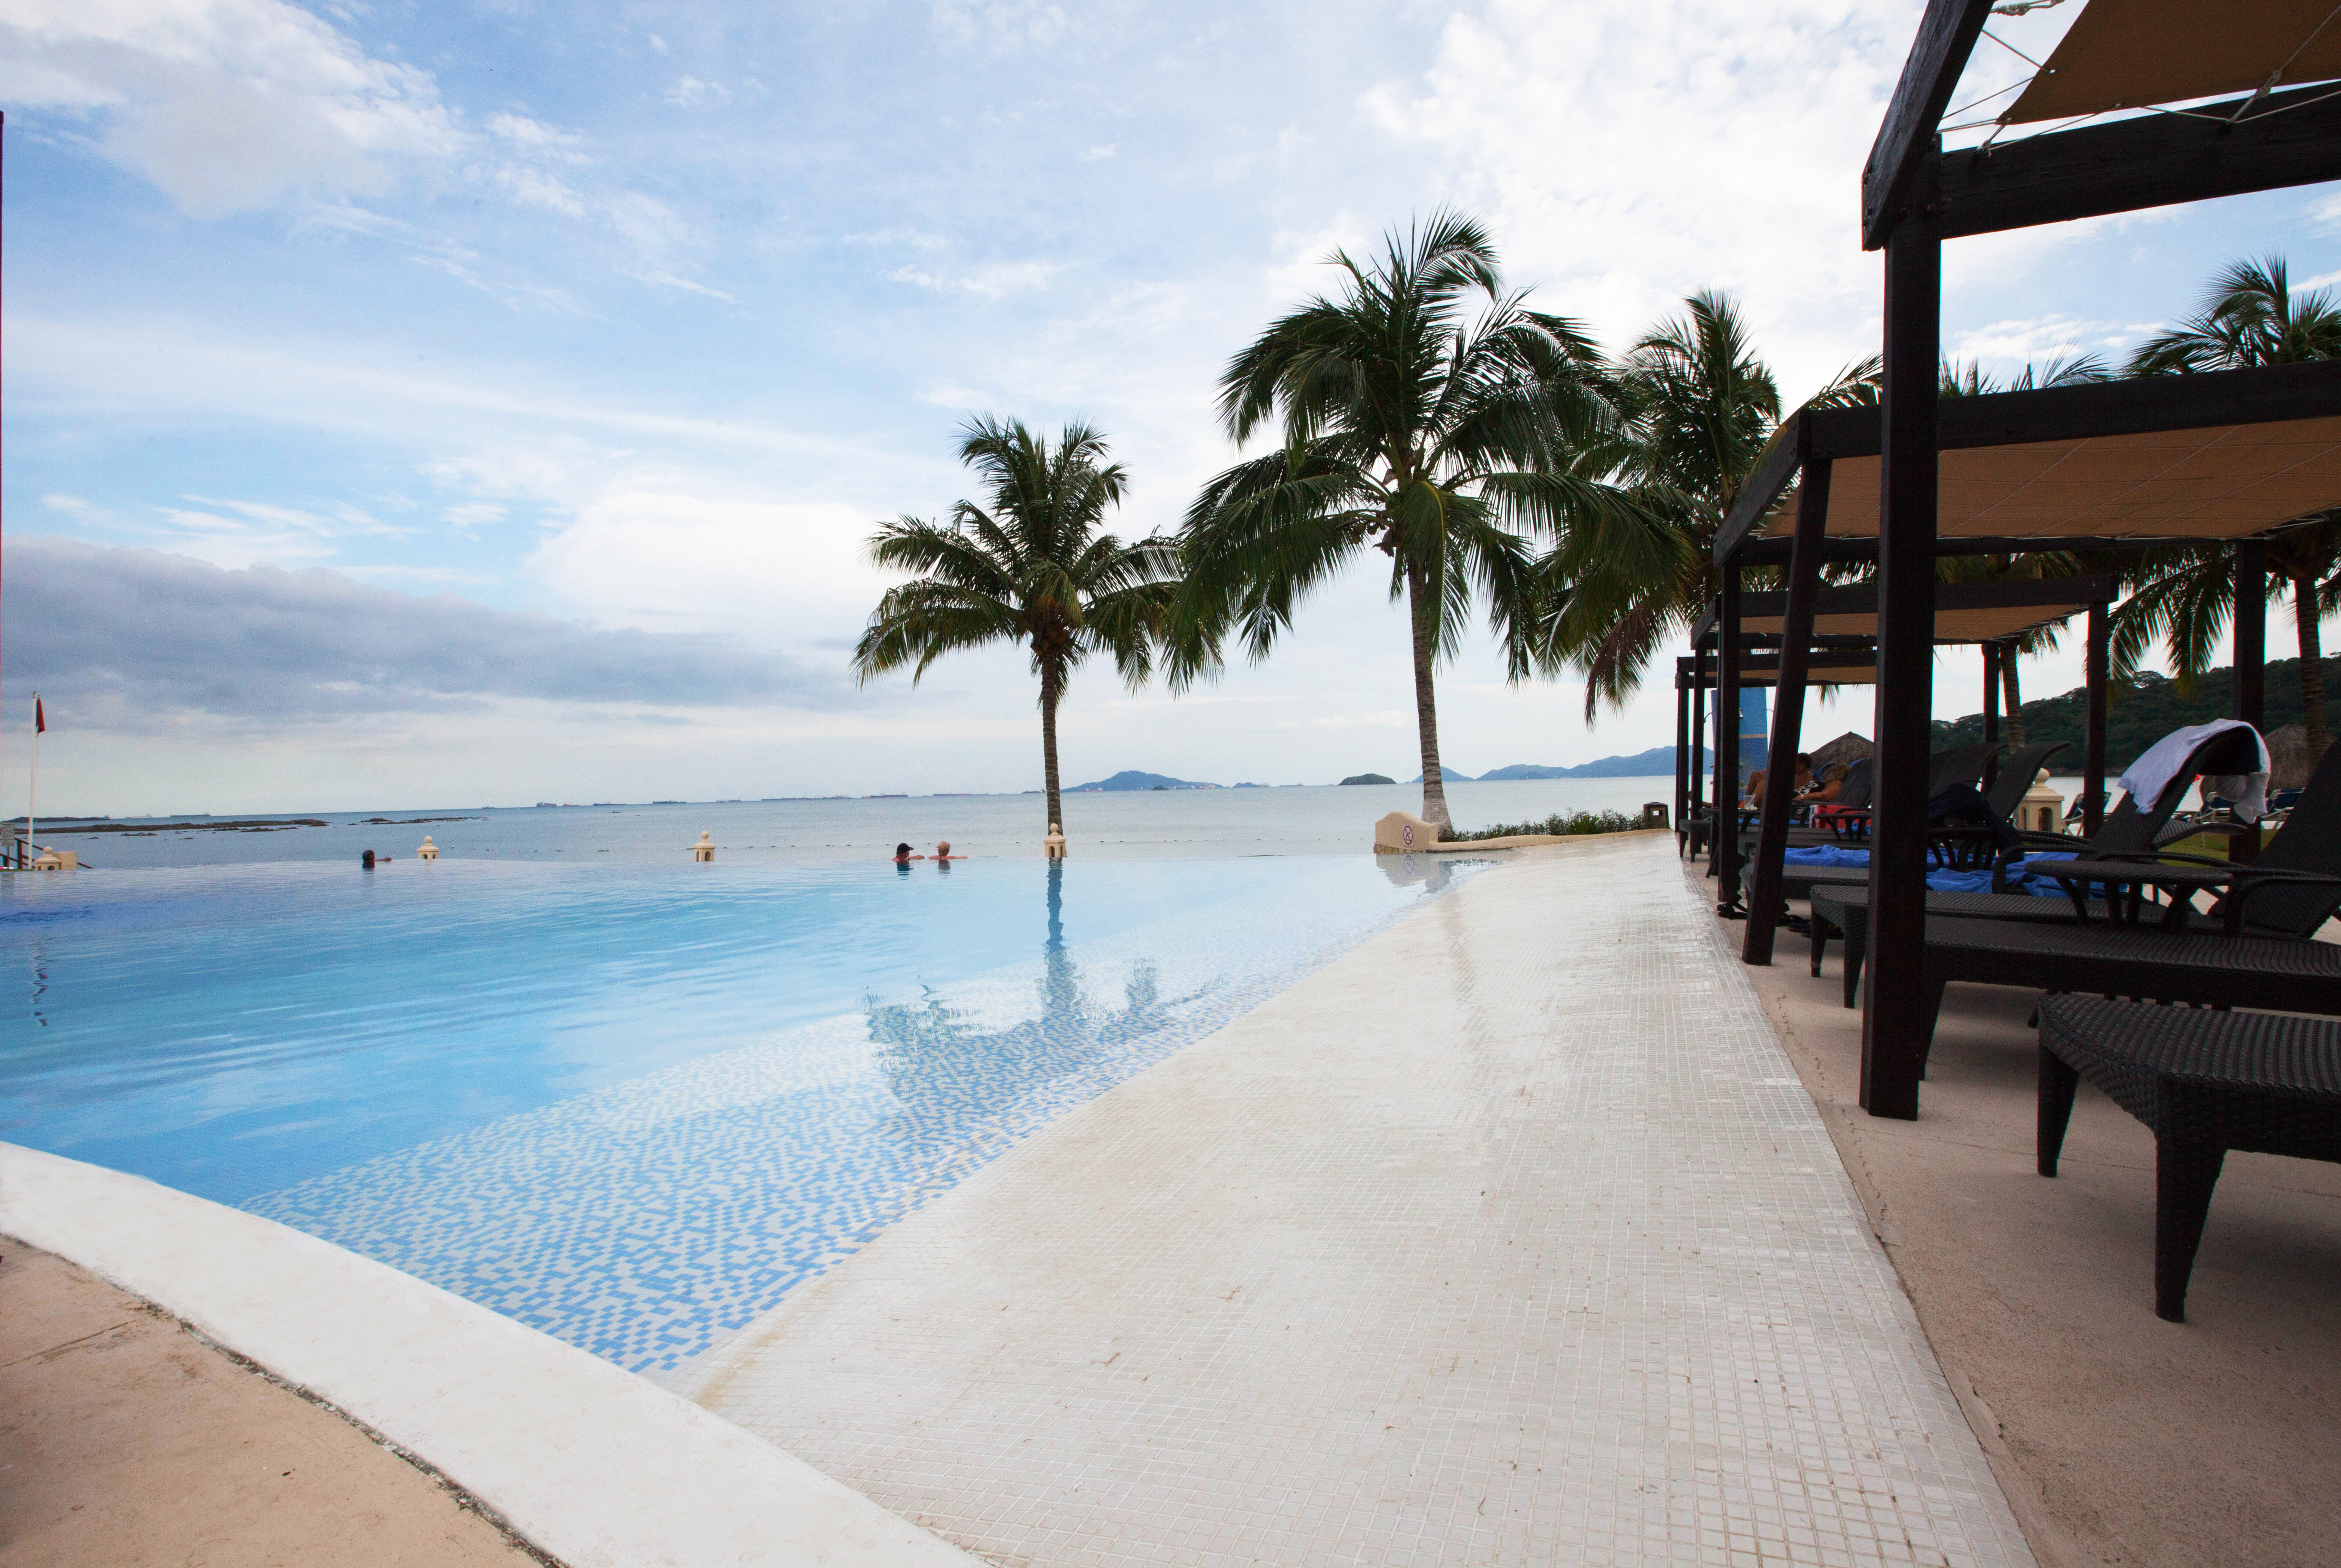 Beachfront Family Play Pool Resort sky water Beach Sea Ocean caribbean arecales walkway swimming pool travel shore lined swimming day